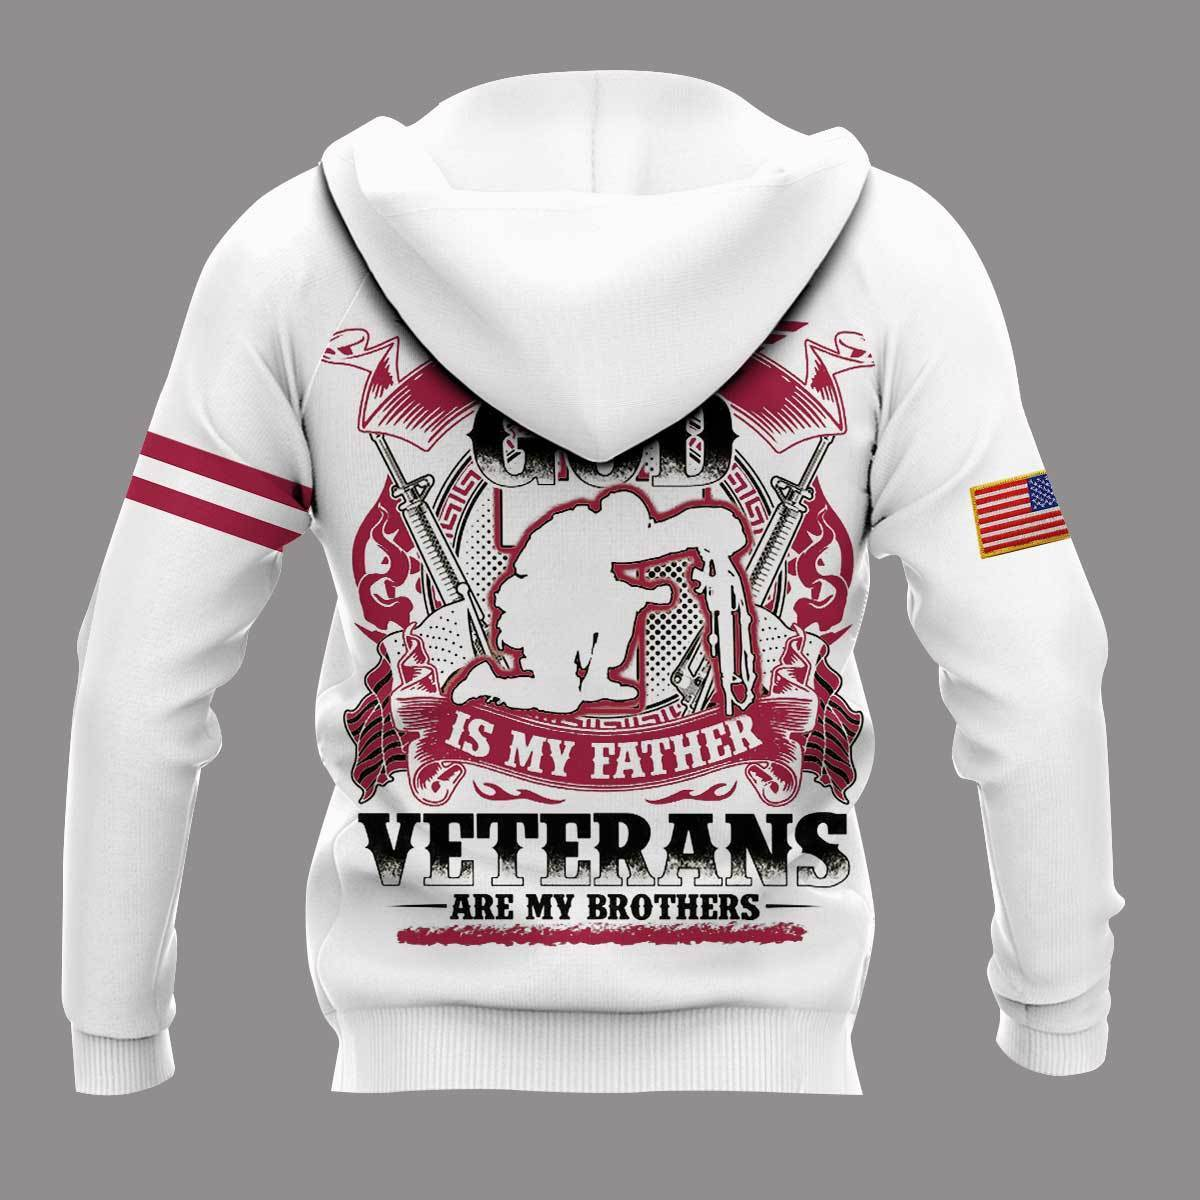 I took a dna test god is my father veterans are my brothers all over print hoodie - back